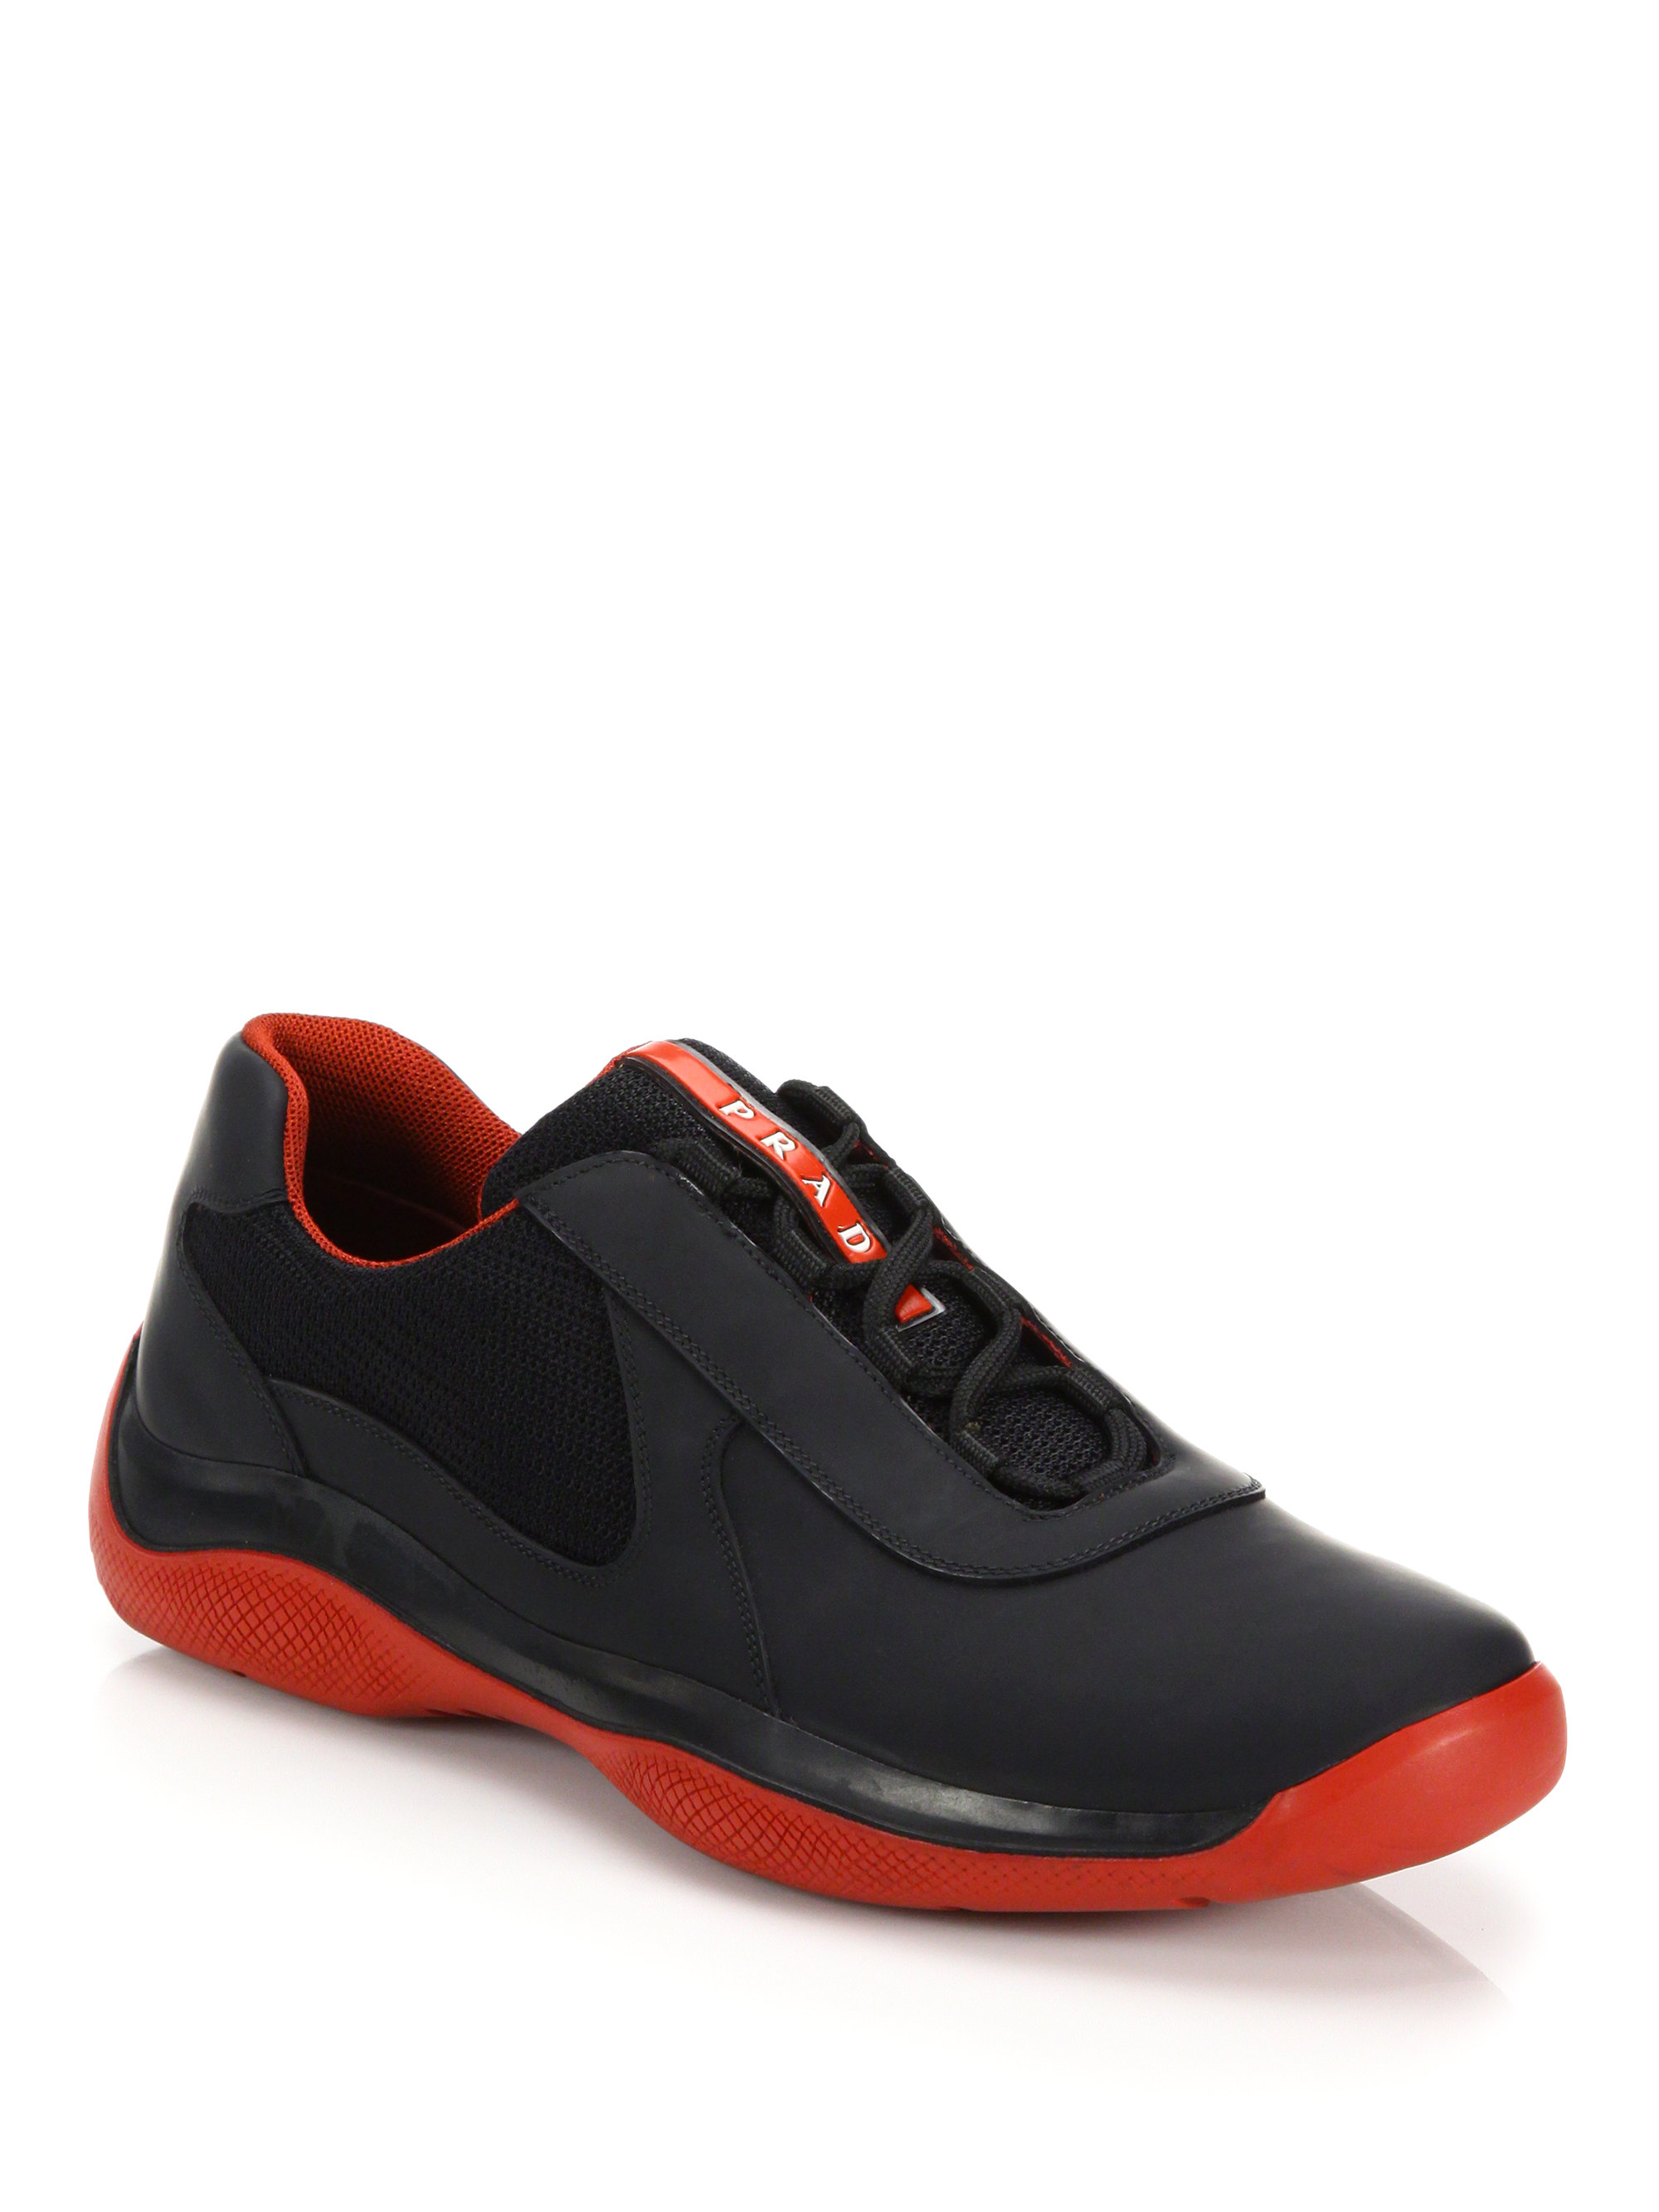 Men Prada Shoe Sneakers 8